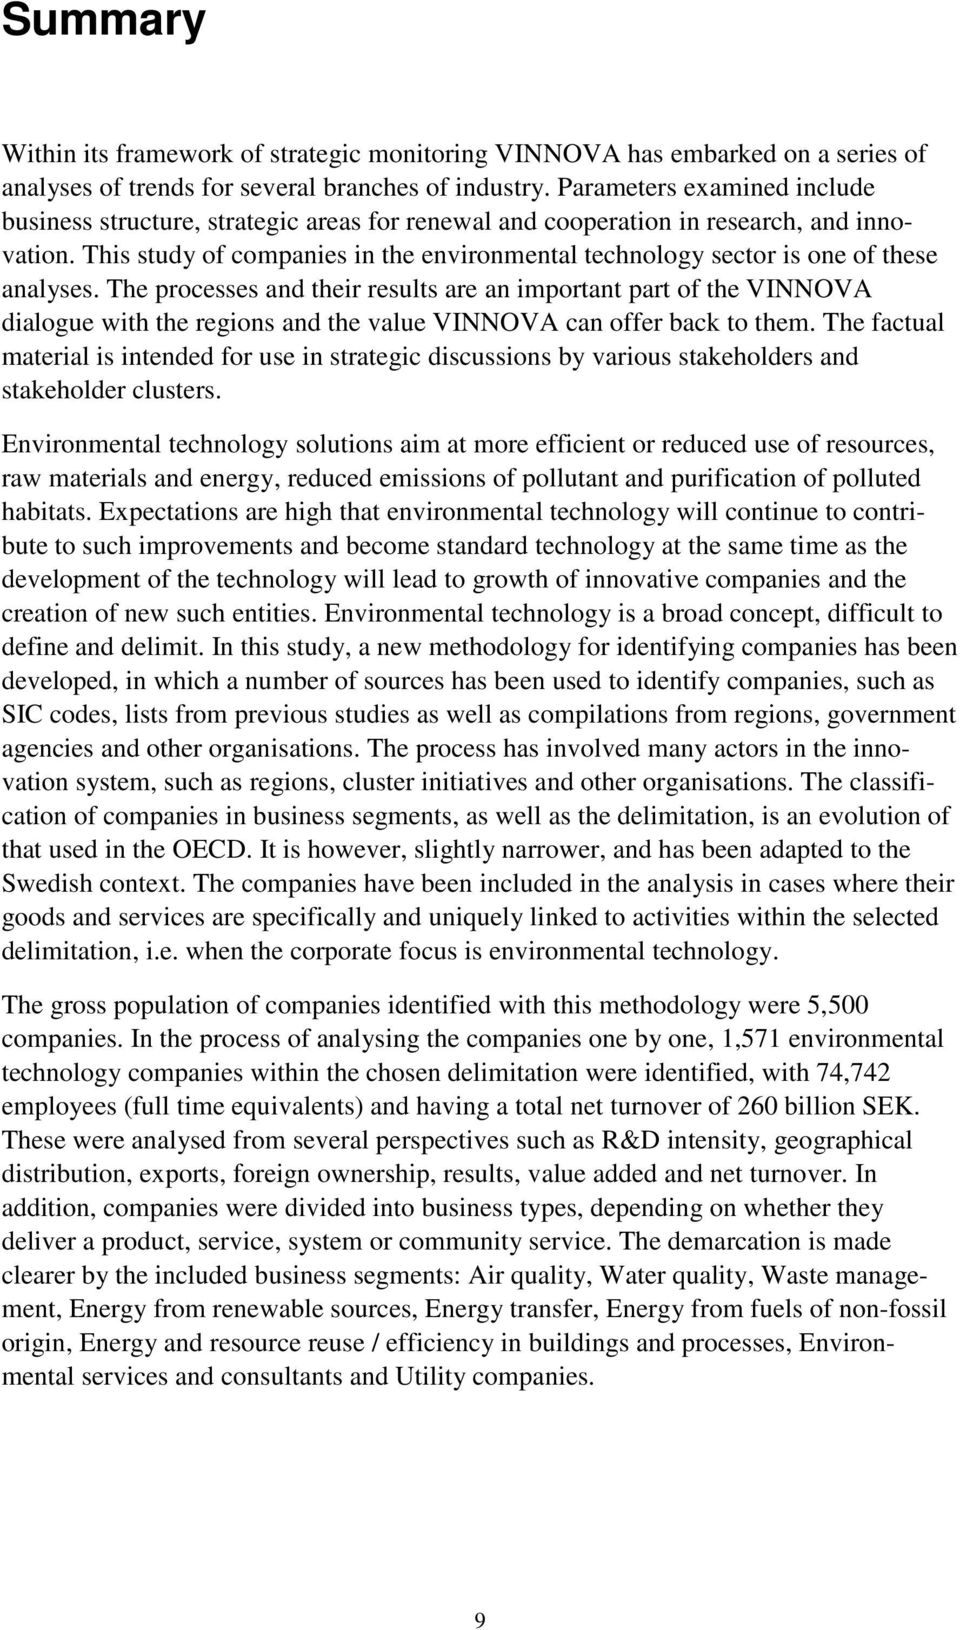 This study of companies in the environmental technology sector is one of these analyses.